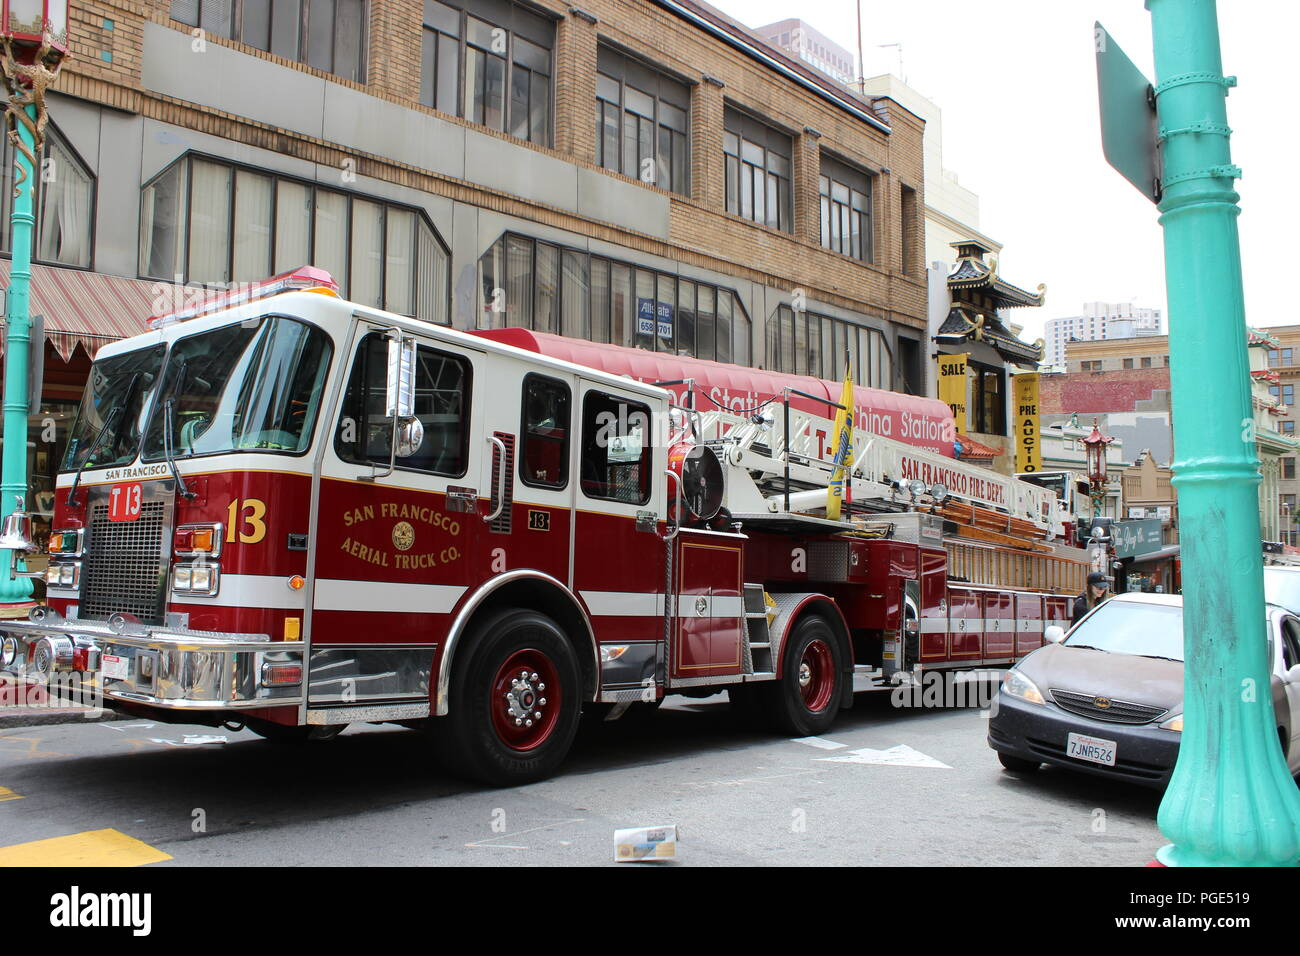 Aerial Ladder Stock Photos & Aerial Ladder Stock Images - Alamy